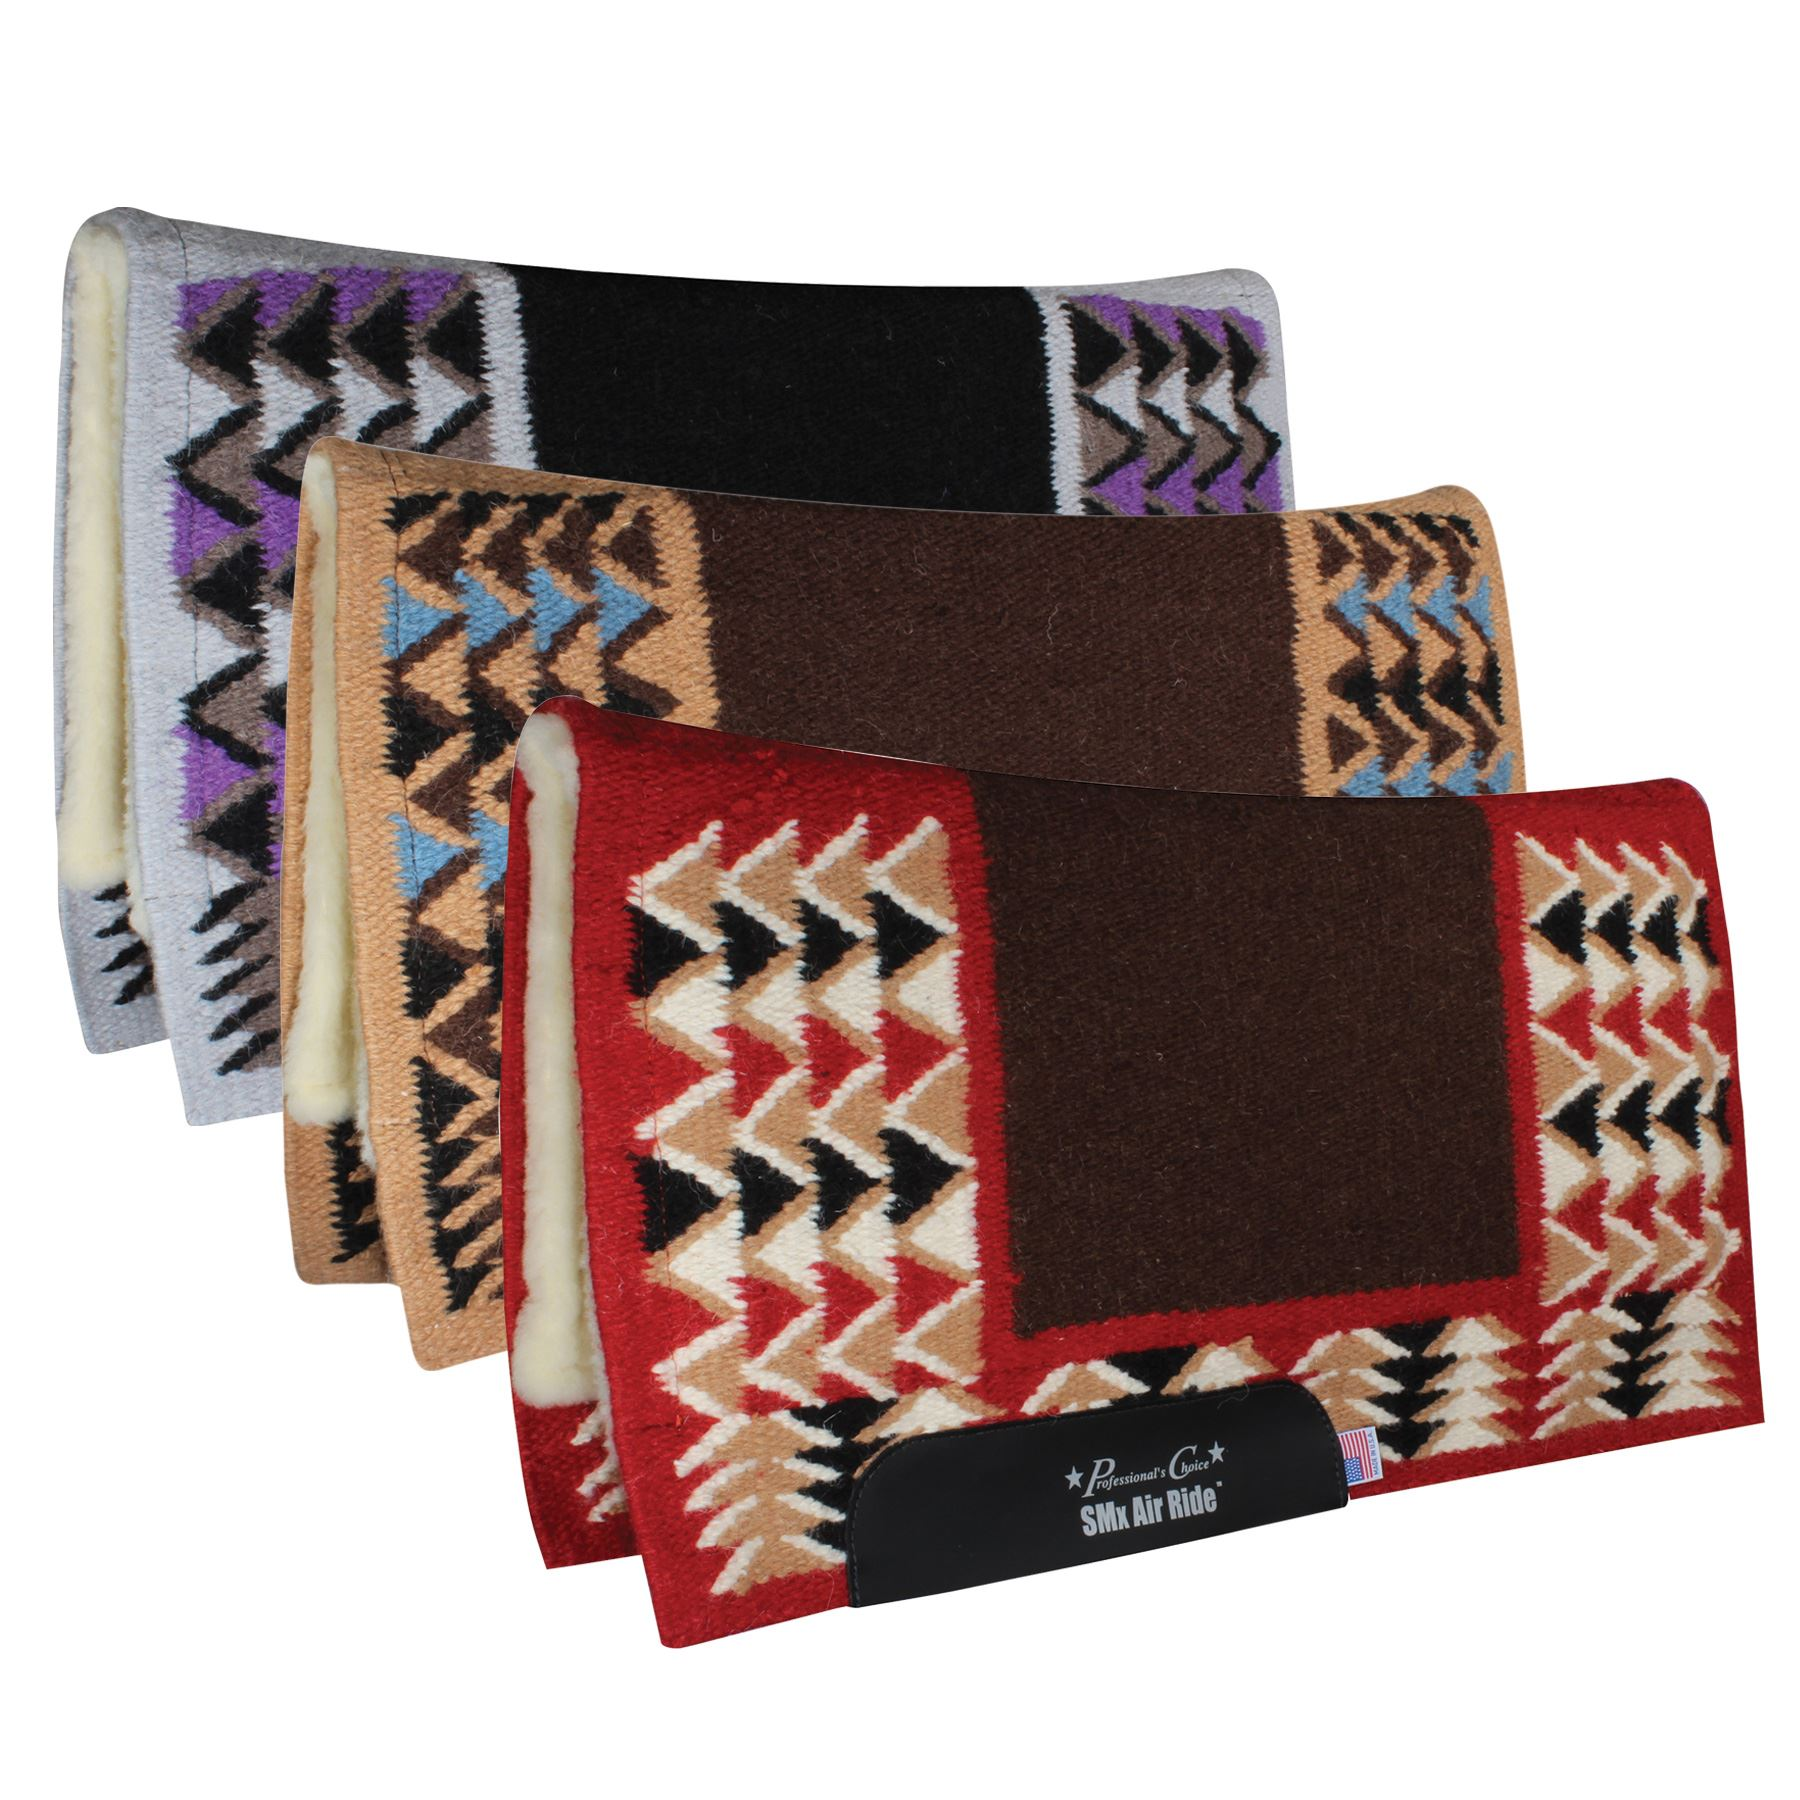 Professional's Choice® Comfort-Fit SMx Air Ride™ Barona Western Saddle Pad